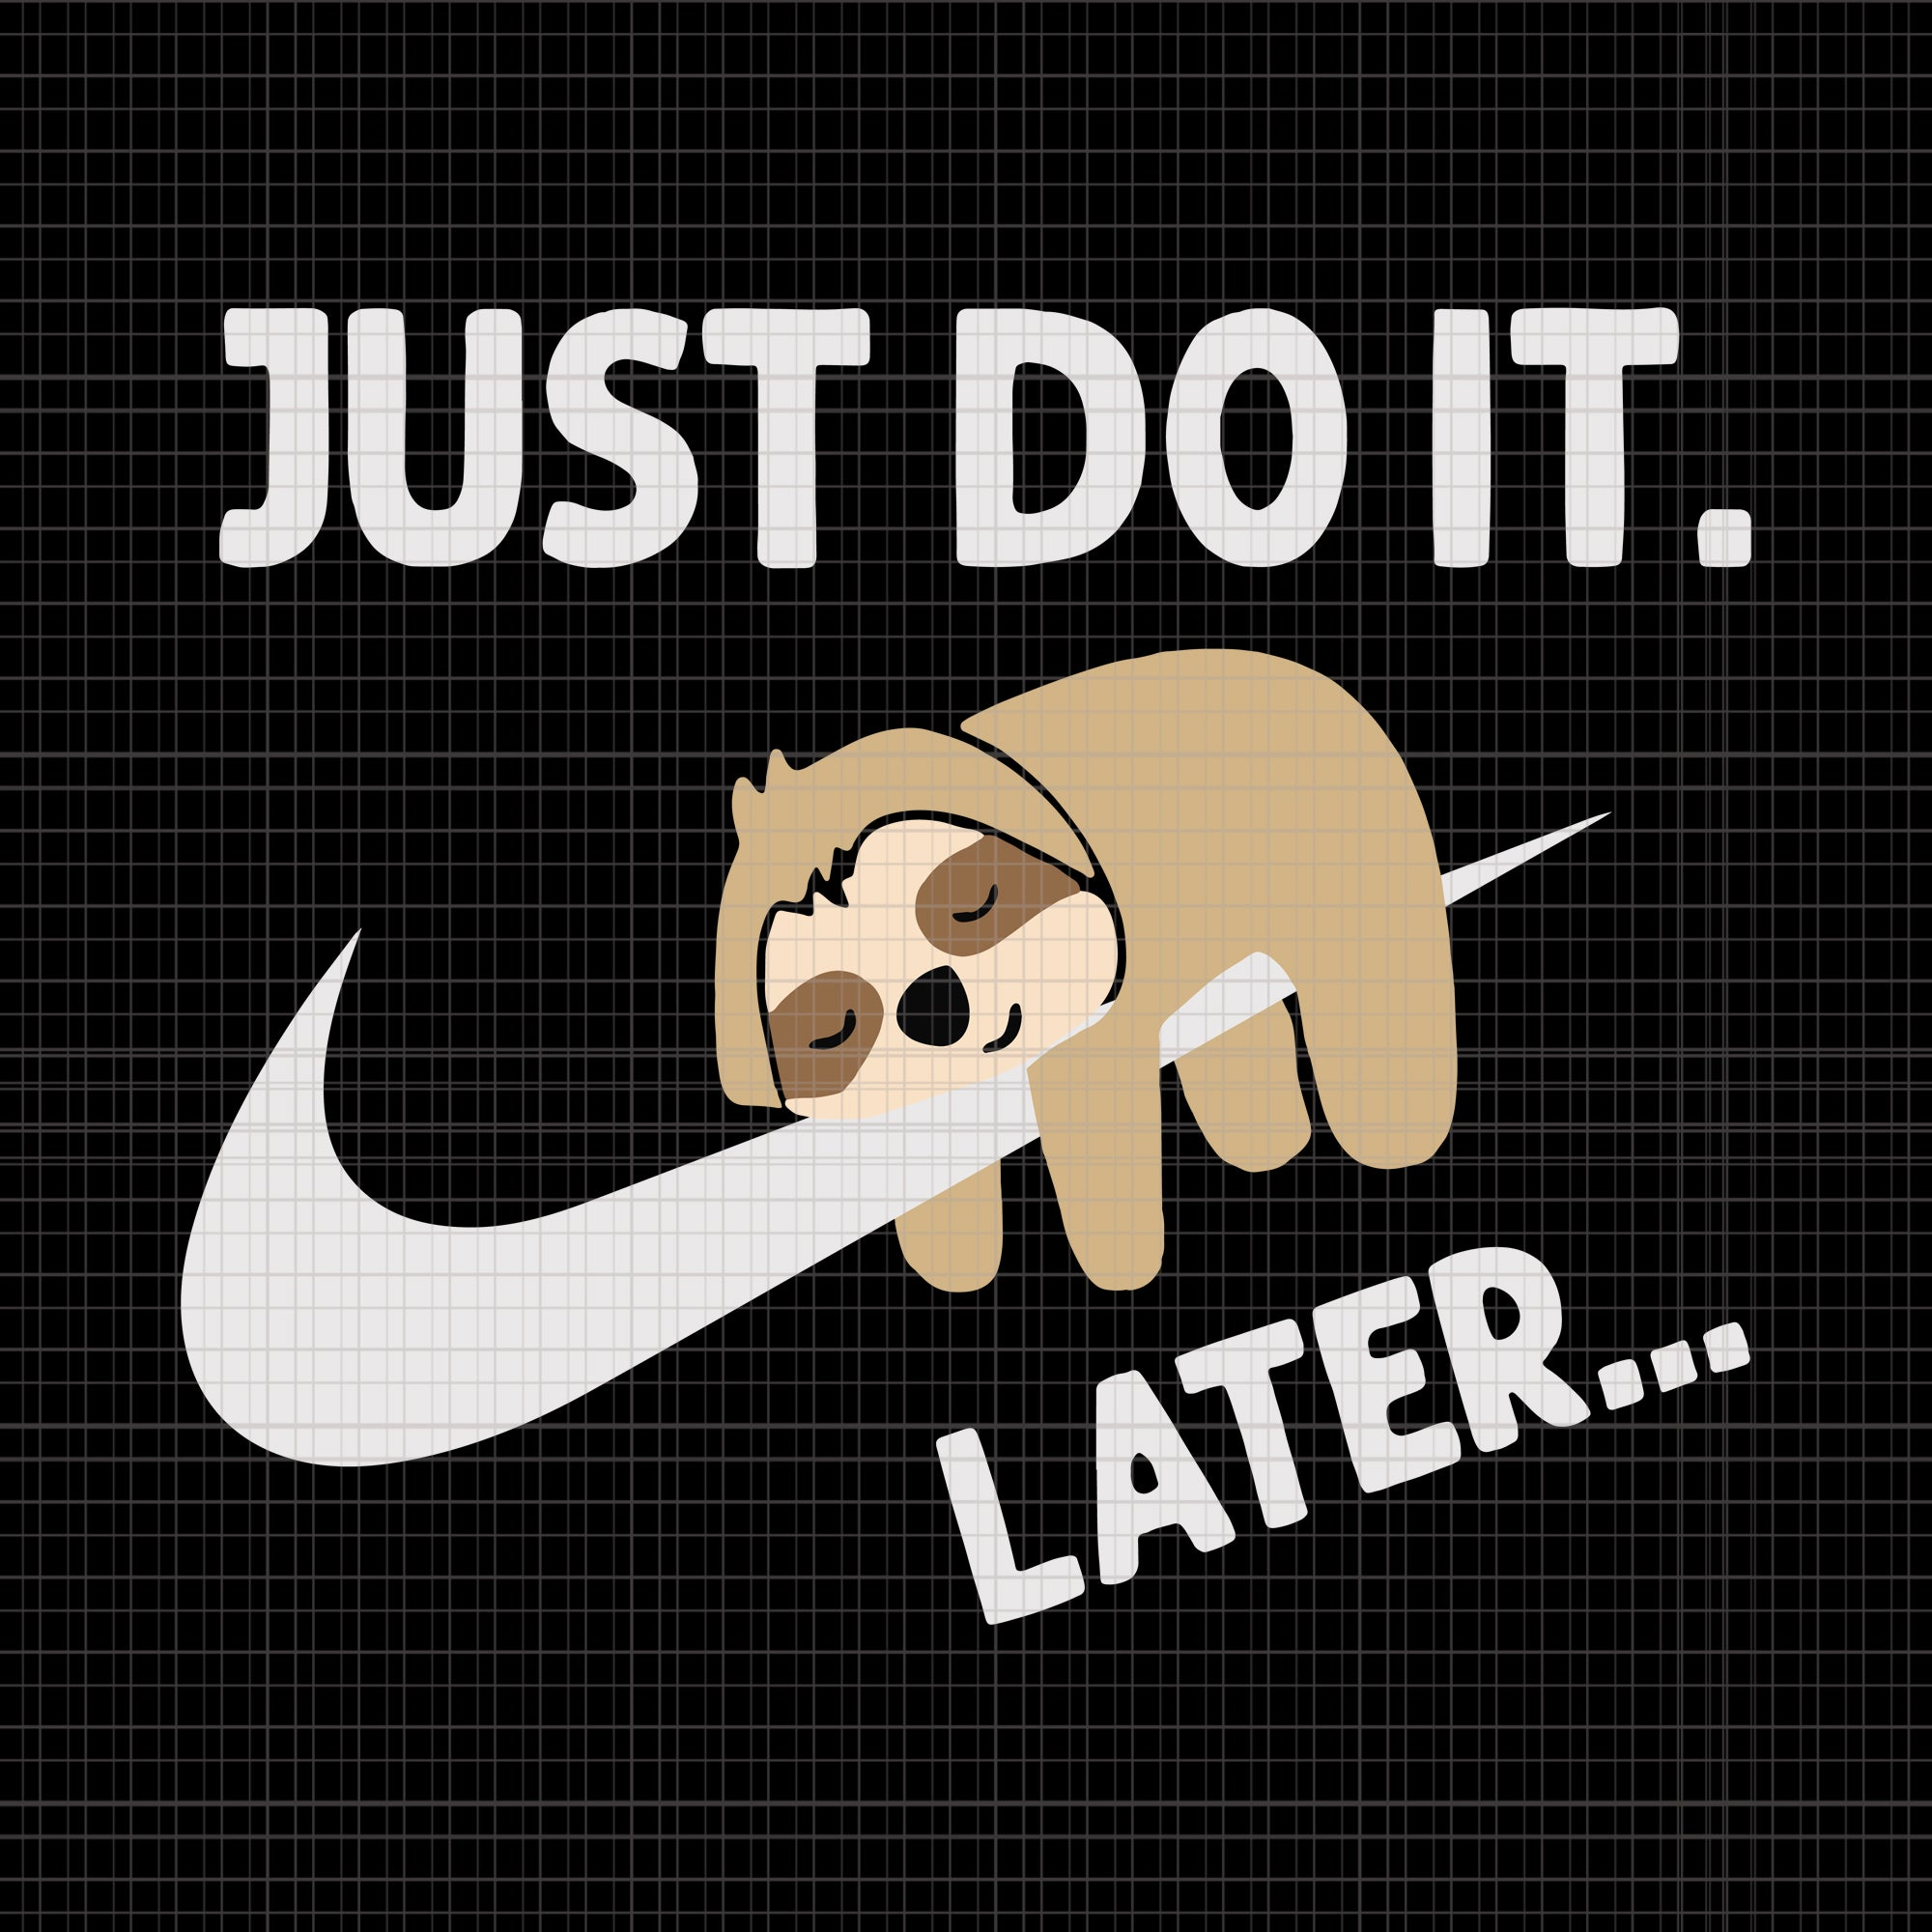 Just do it later Lazy Sloth, Lazy Sloth svg, Lazy Sloth png, Just do it later Lazy Sloth svg, Just do it later Lazy Sloth png, Just do it later Lazy Sloth